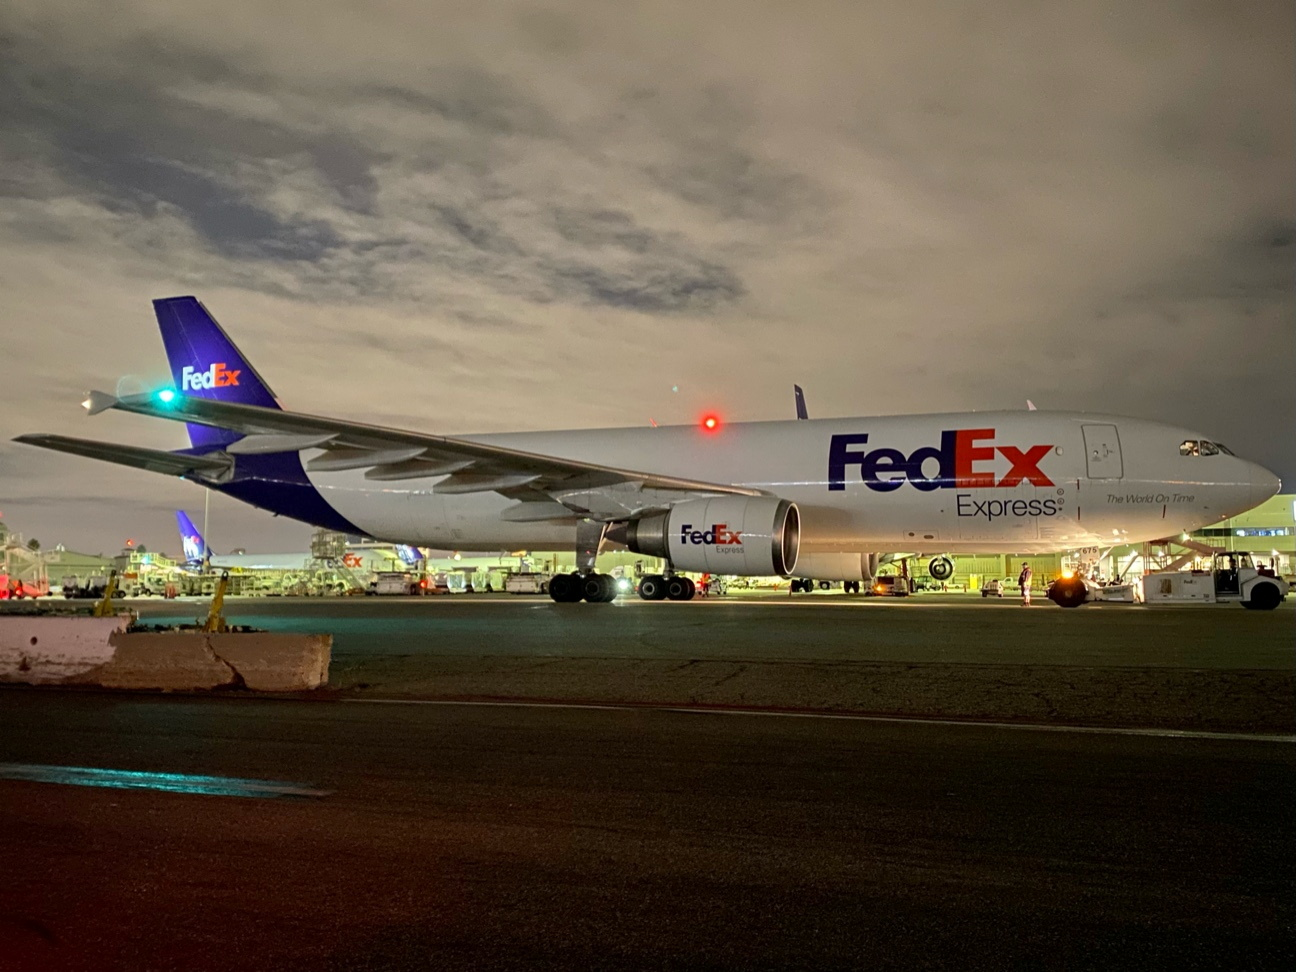 A plane of FedEx Express carrying a first batch of Pfizer/BioNTEch COVID-19 vaccine is seen at LAX Airport, following the outbreak of the coronavirus disease (COVID-19), in Los Angeles, California, U.S., December 13, 2020, in this photo obtained from social media. Los Angeles World Airports/via REUTERS